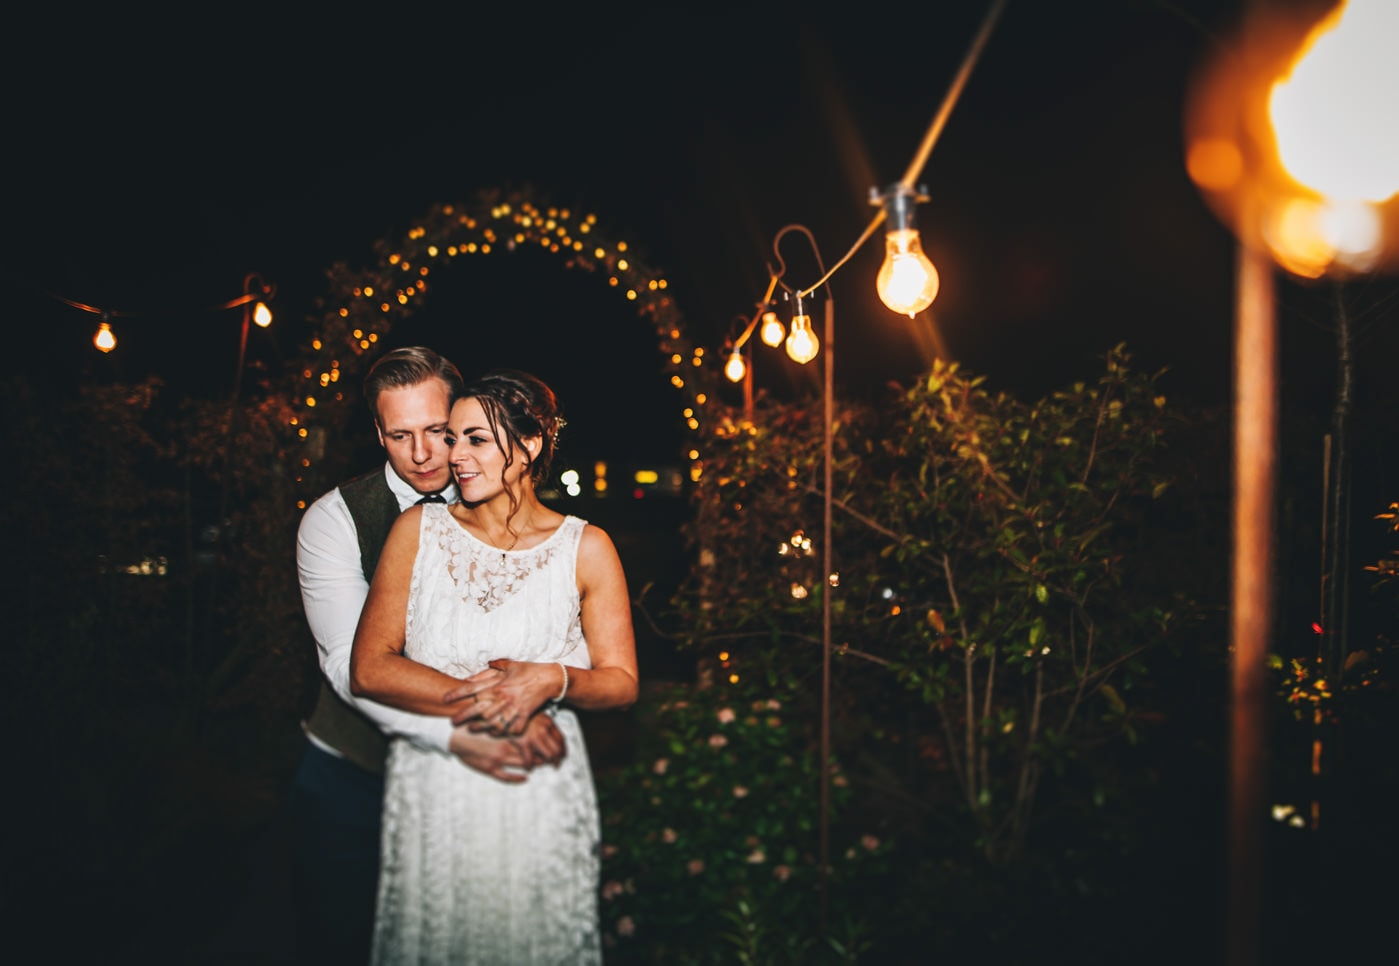 creative wedding portraits at Owen House wedding barn